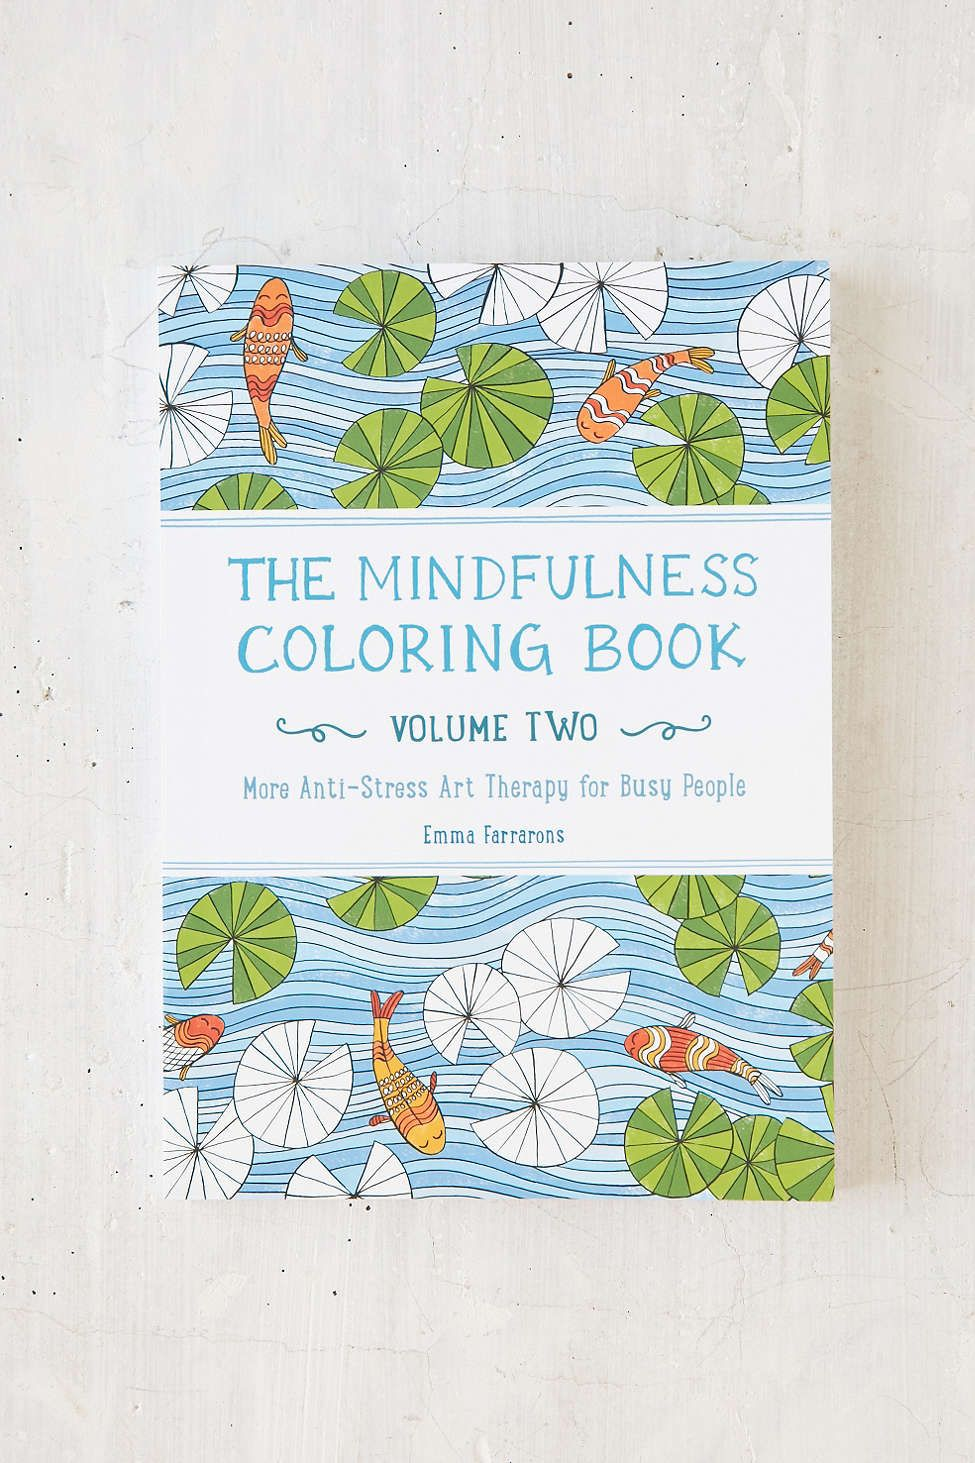 The Mindfulness Coloring Book Vol 2 More Anti Stress Art Therapy For